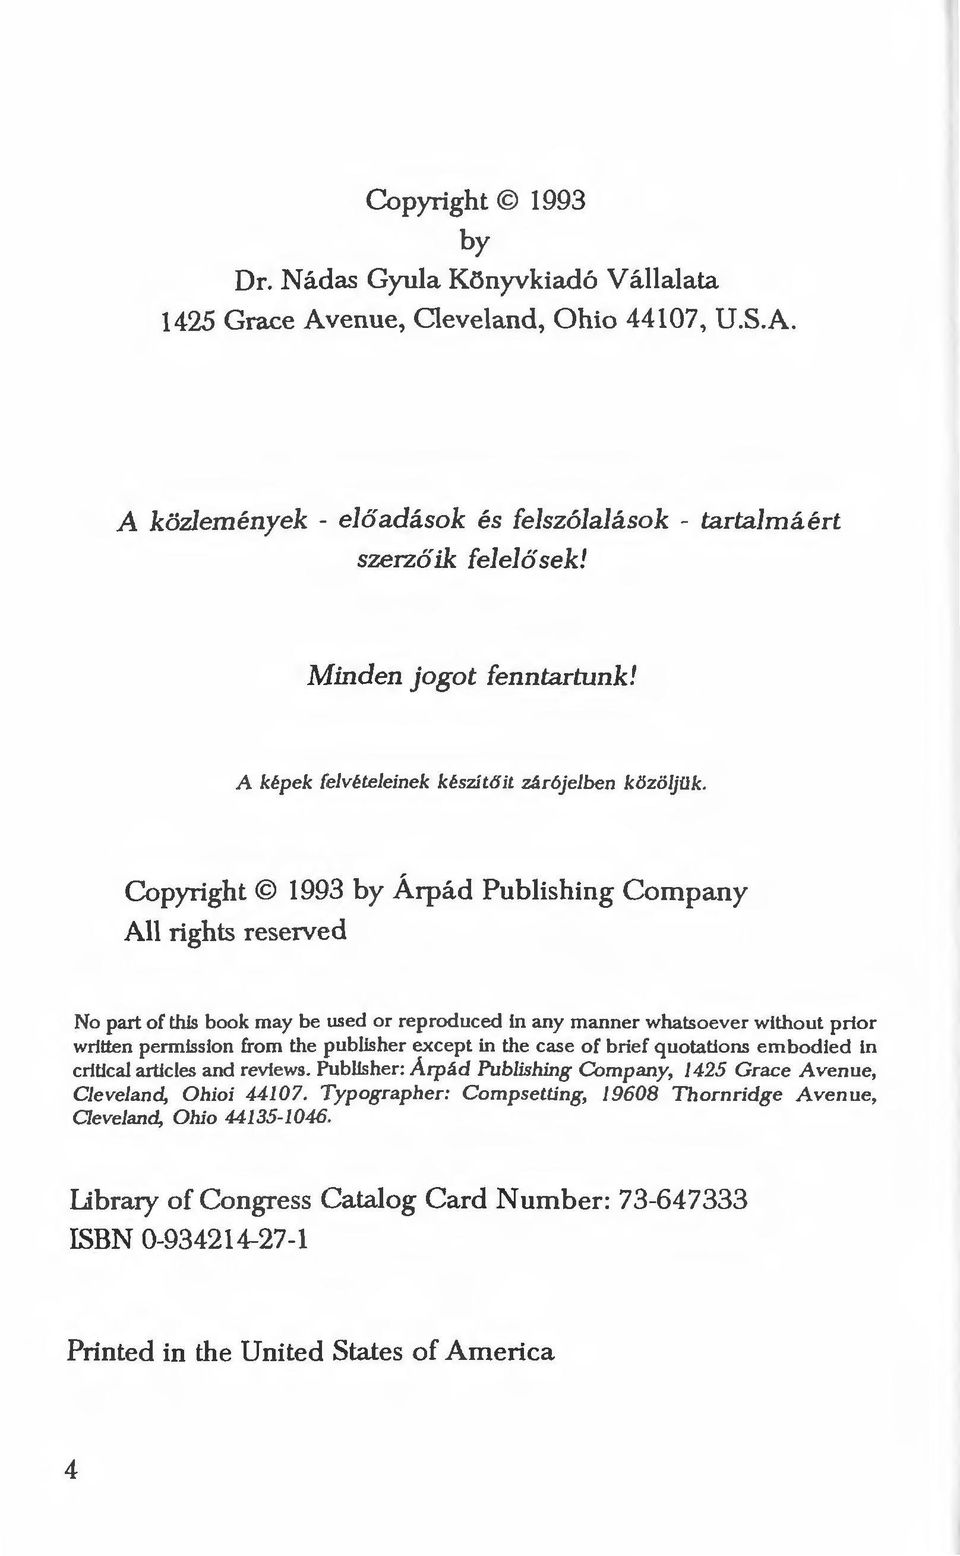 Copyright 1993 by Árpád Publisbing Campany All rights reserved No part of this book may be us ed or reproduced in any manner whatsoeve r witho ut prio r written permission from the publisher except